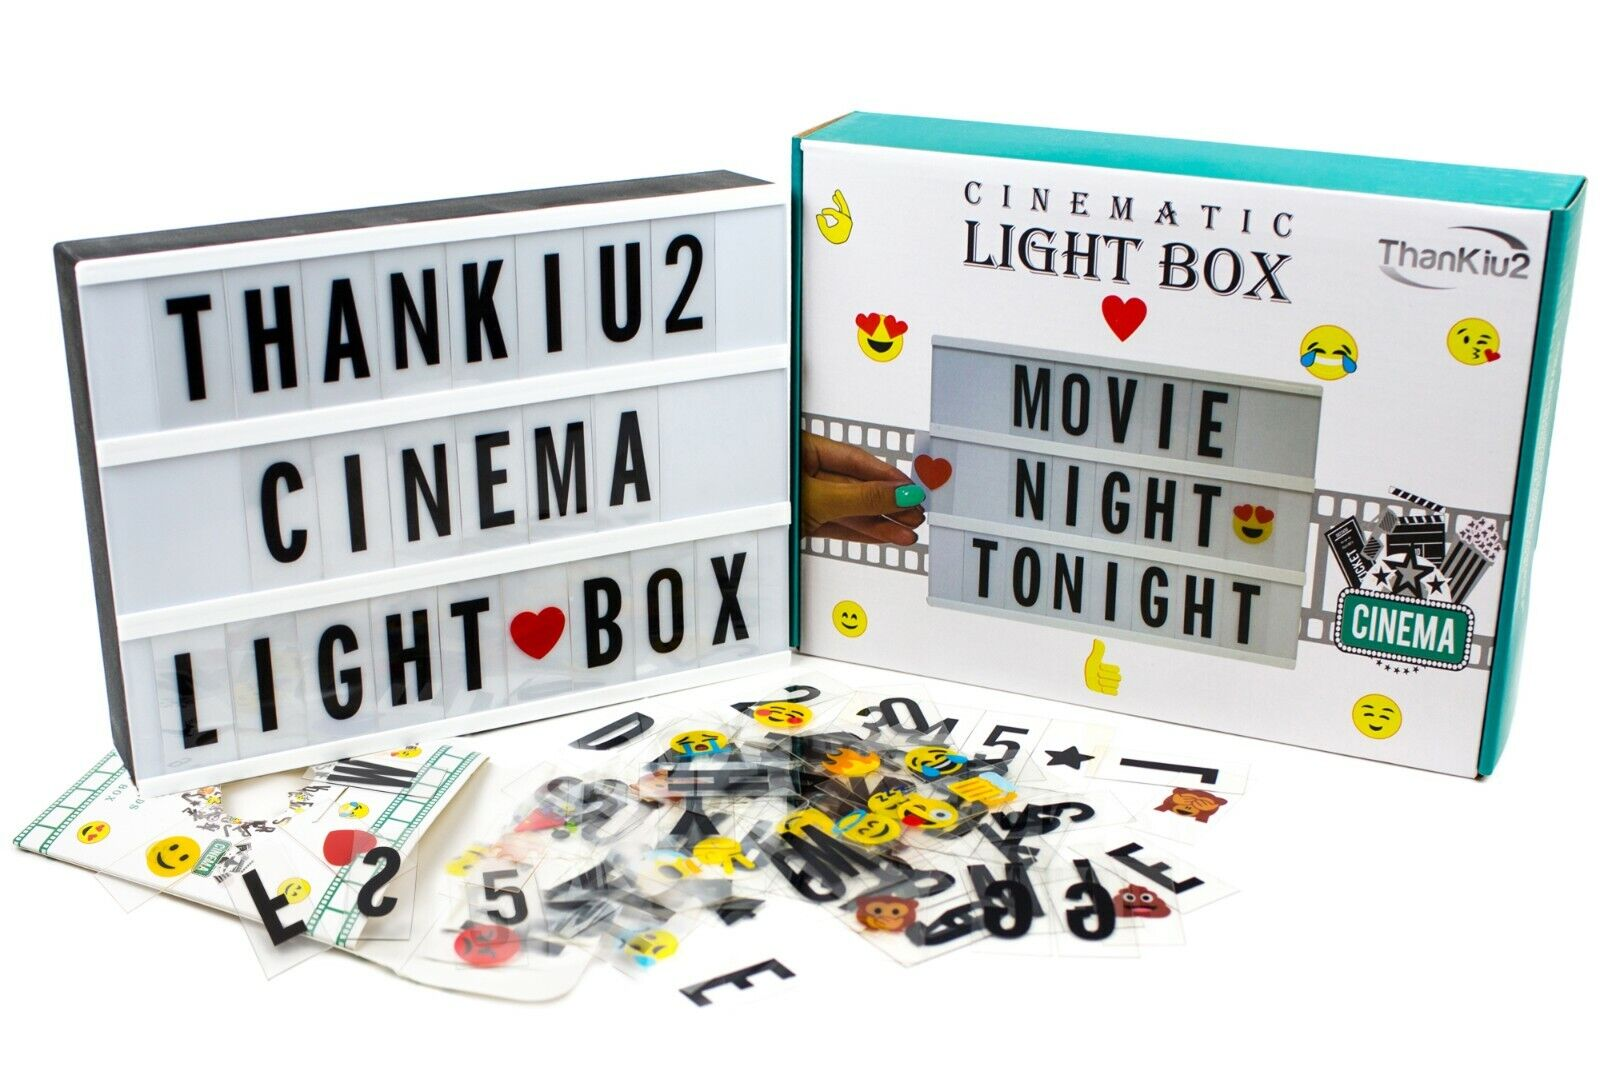 Cinema Light Box with Letters - Vintage Cinematic Light Up M